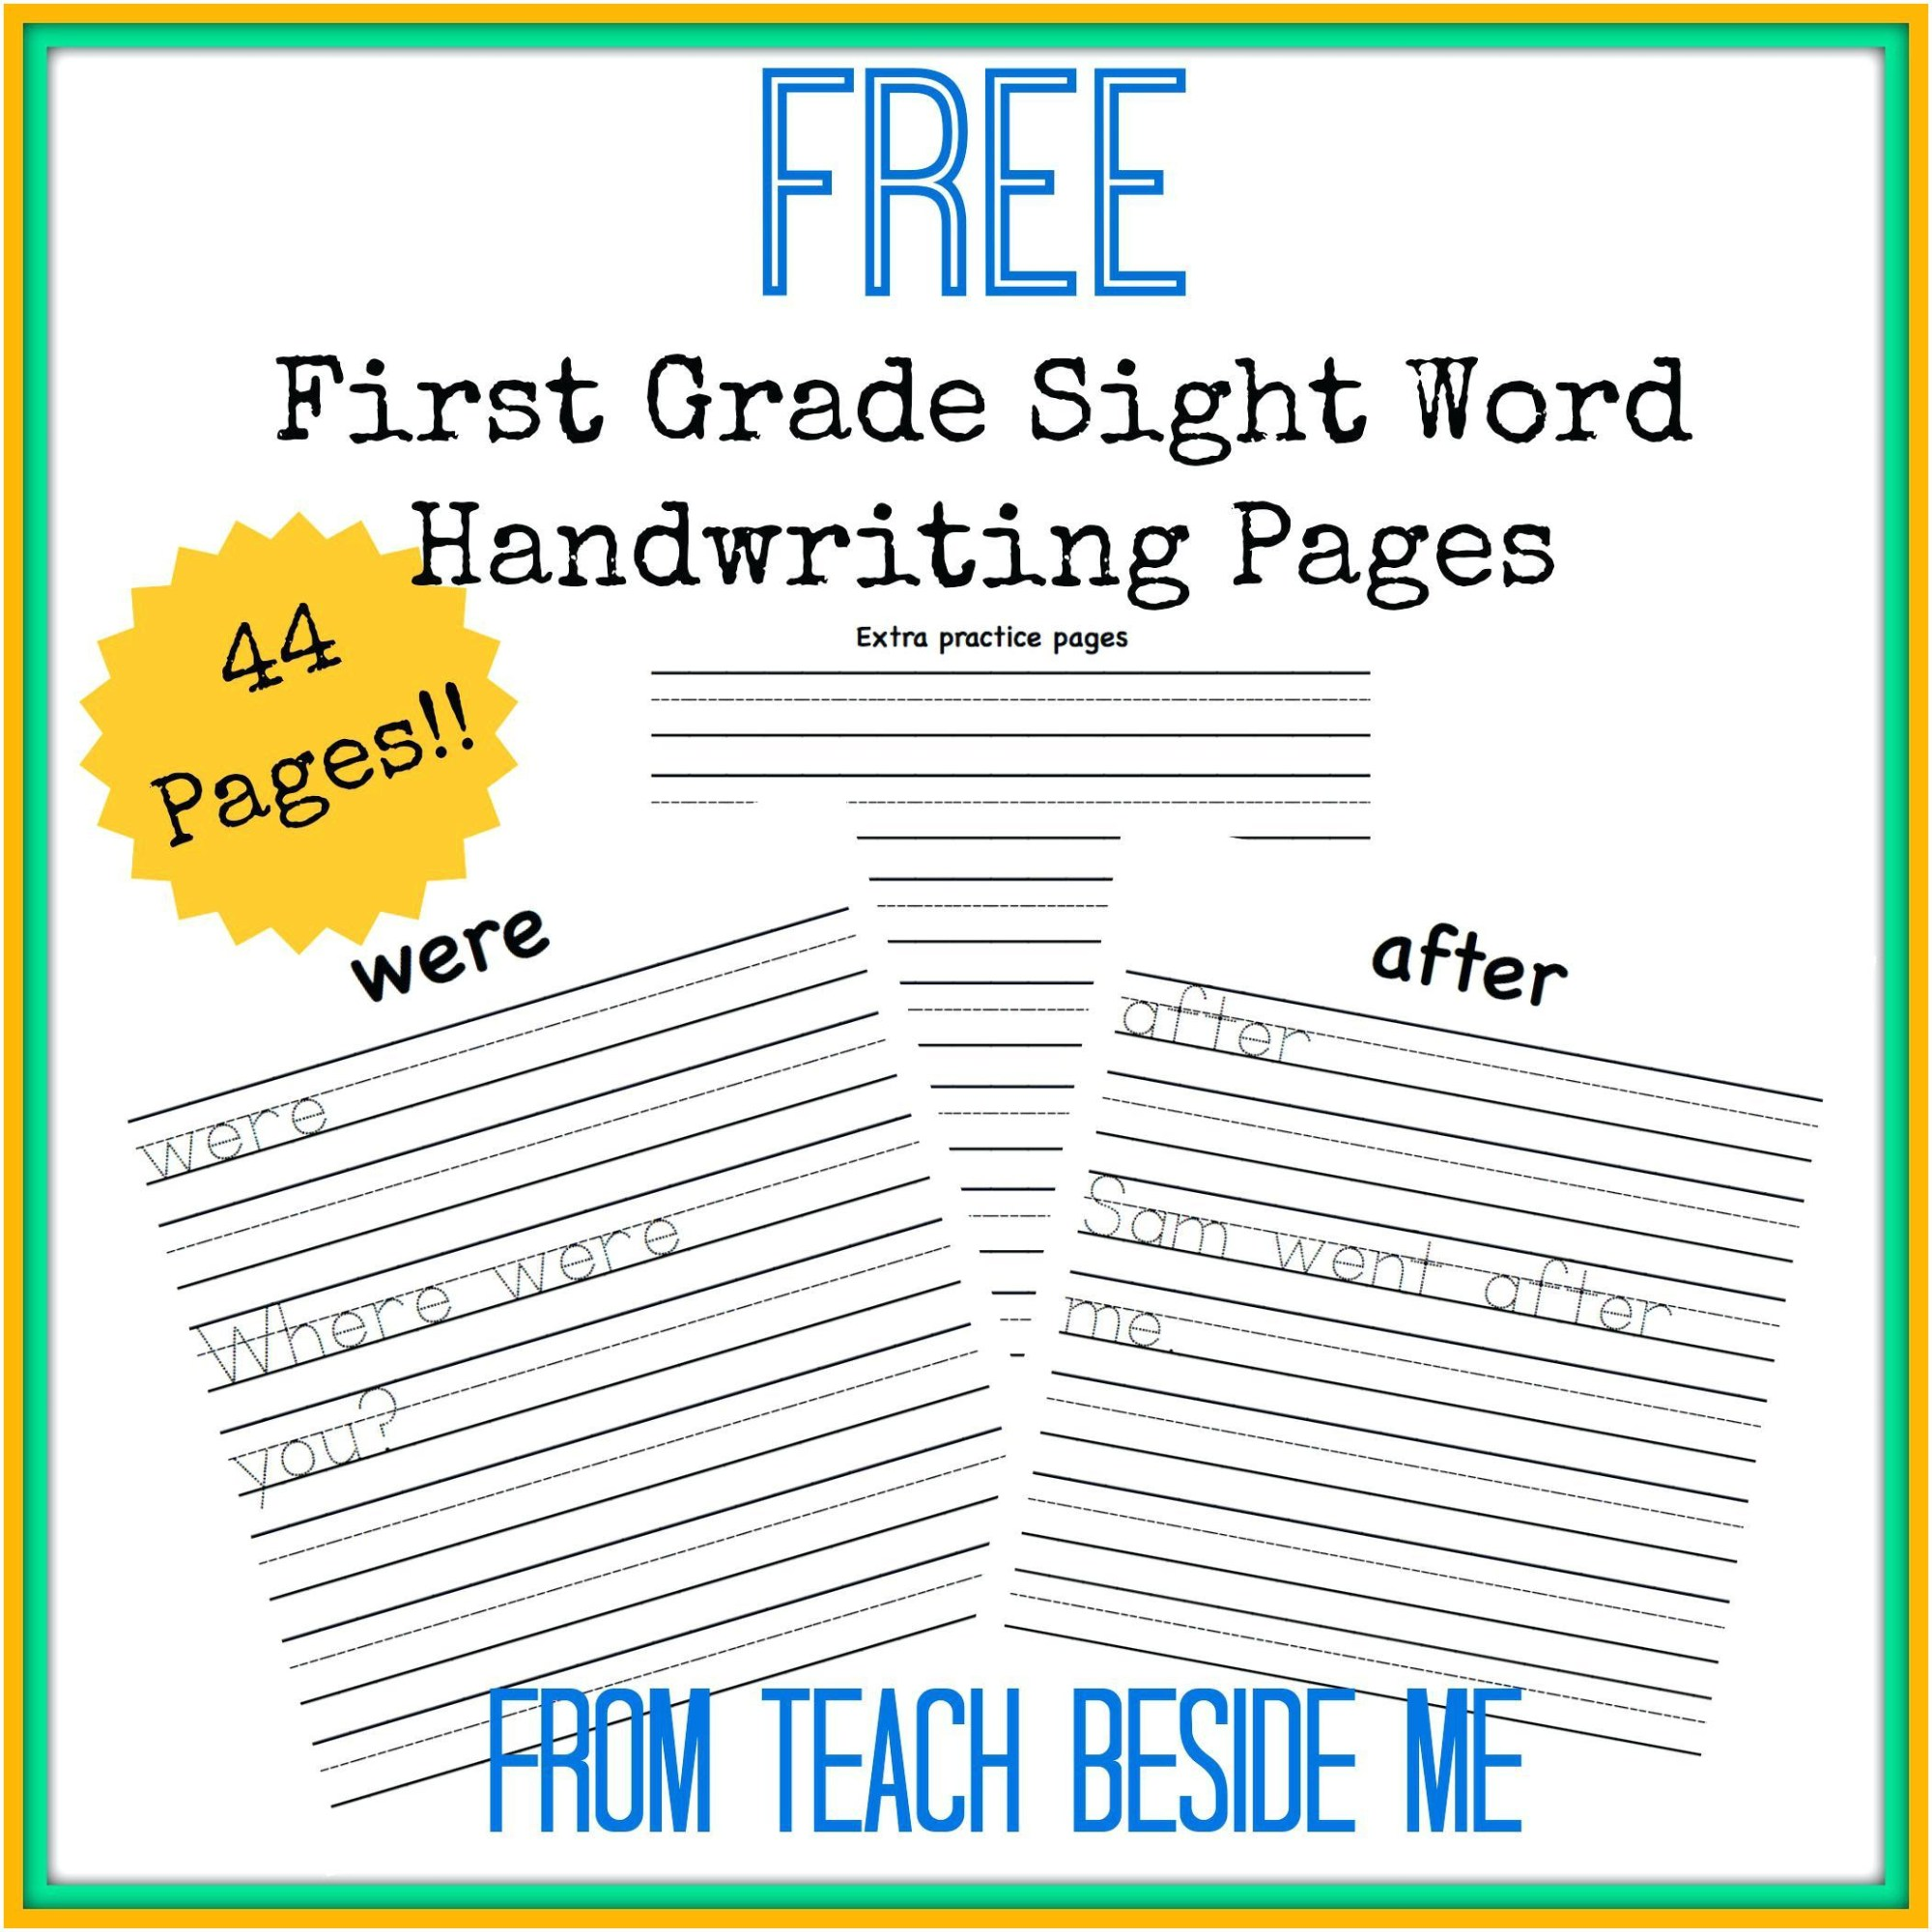 hight resolution of Old English Handwriting Worksheets   Printable Worksheets and Activities  for Teachers